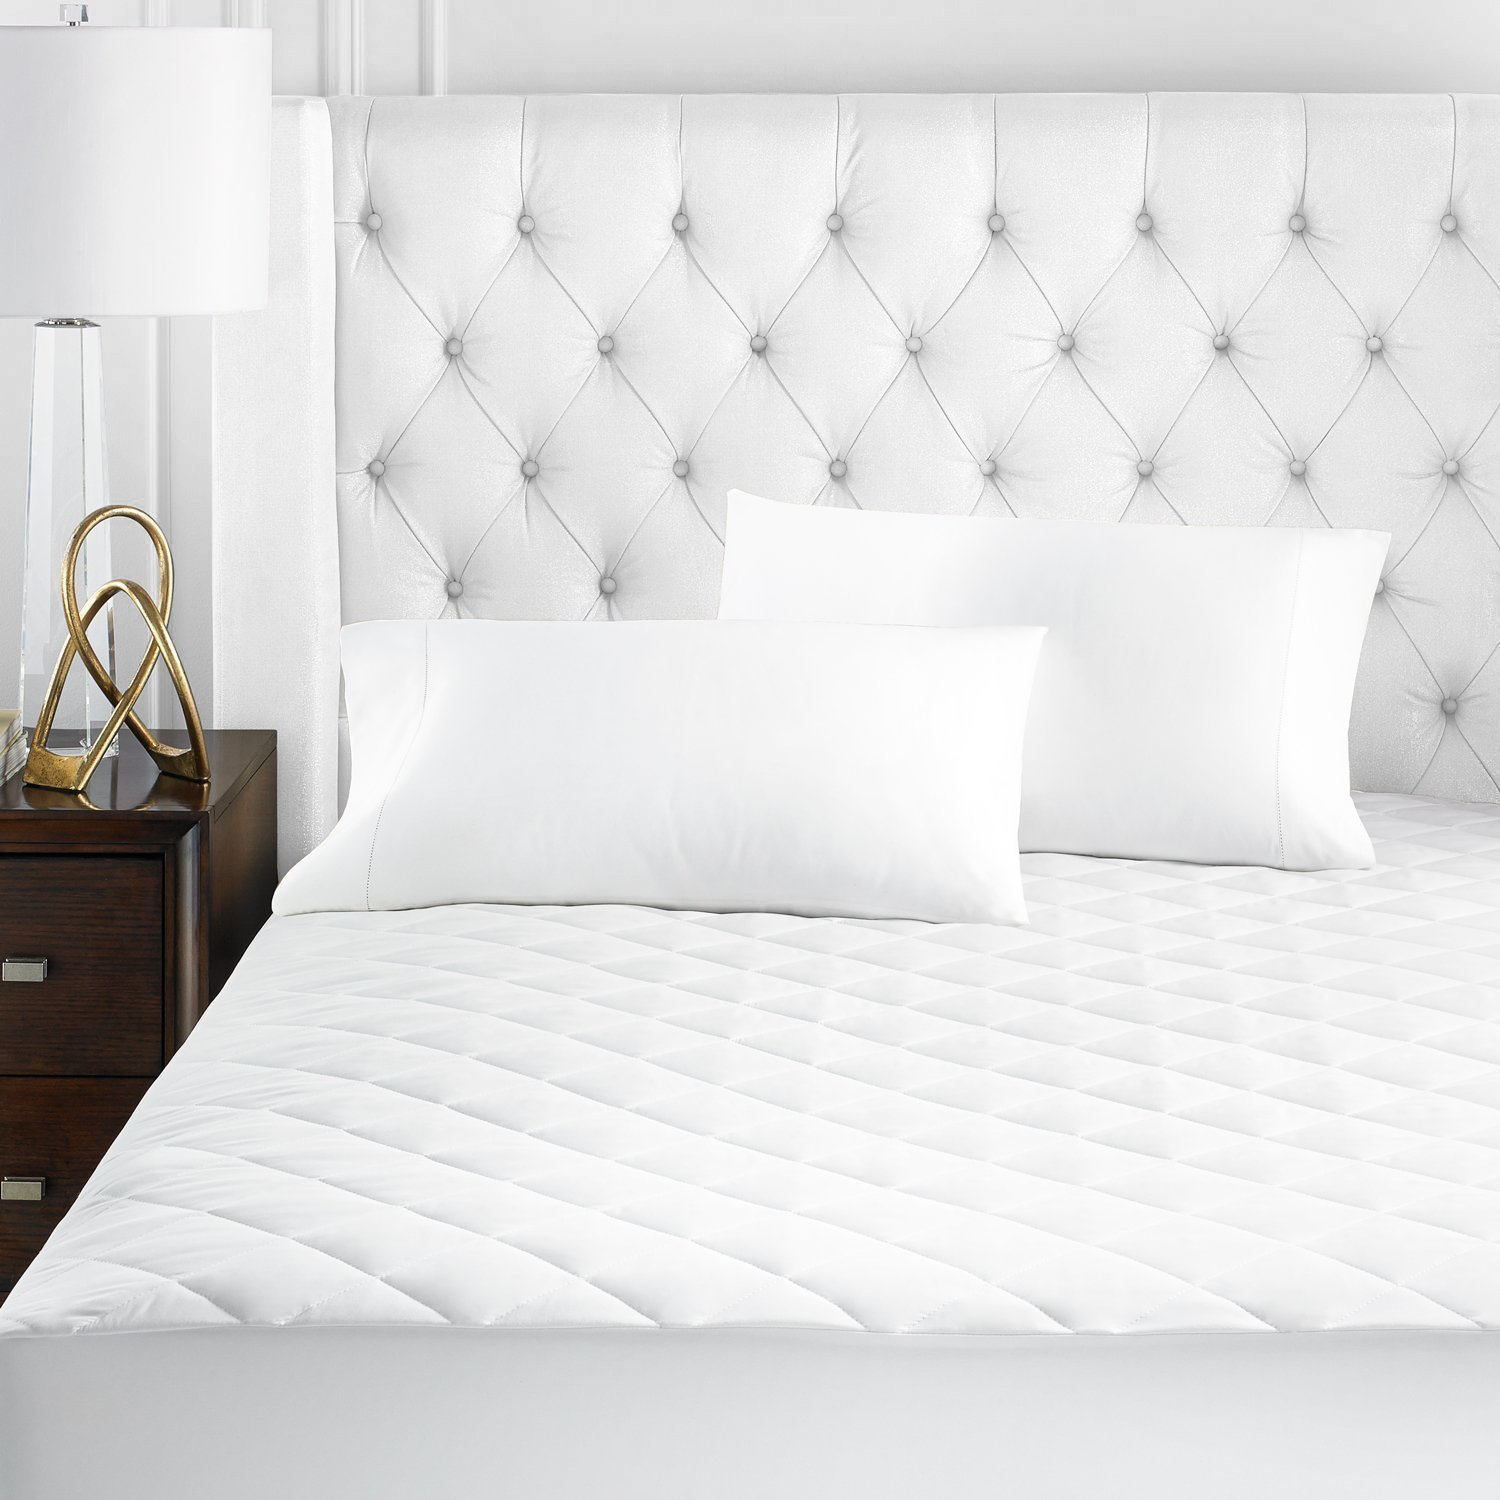 Beckham Hotel Collection 1500 Series Microfiber Mattress Pad - Quilted, Hypoallergnic, and Water-Resistant - King